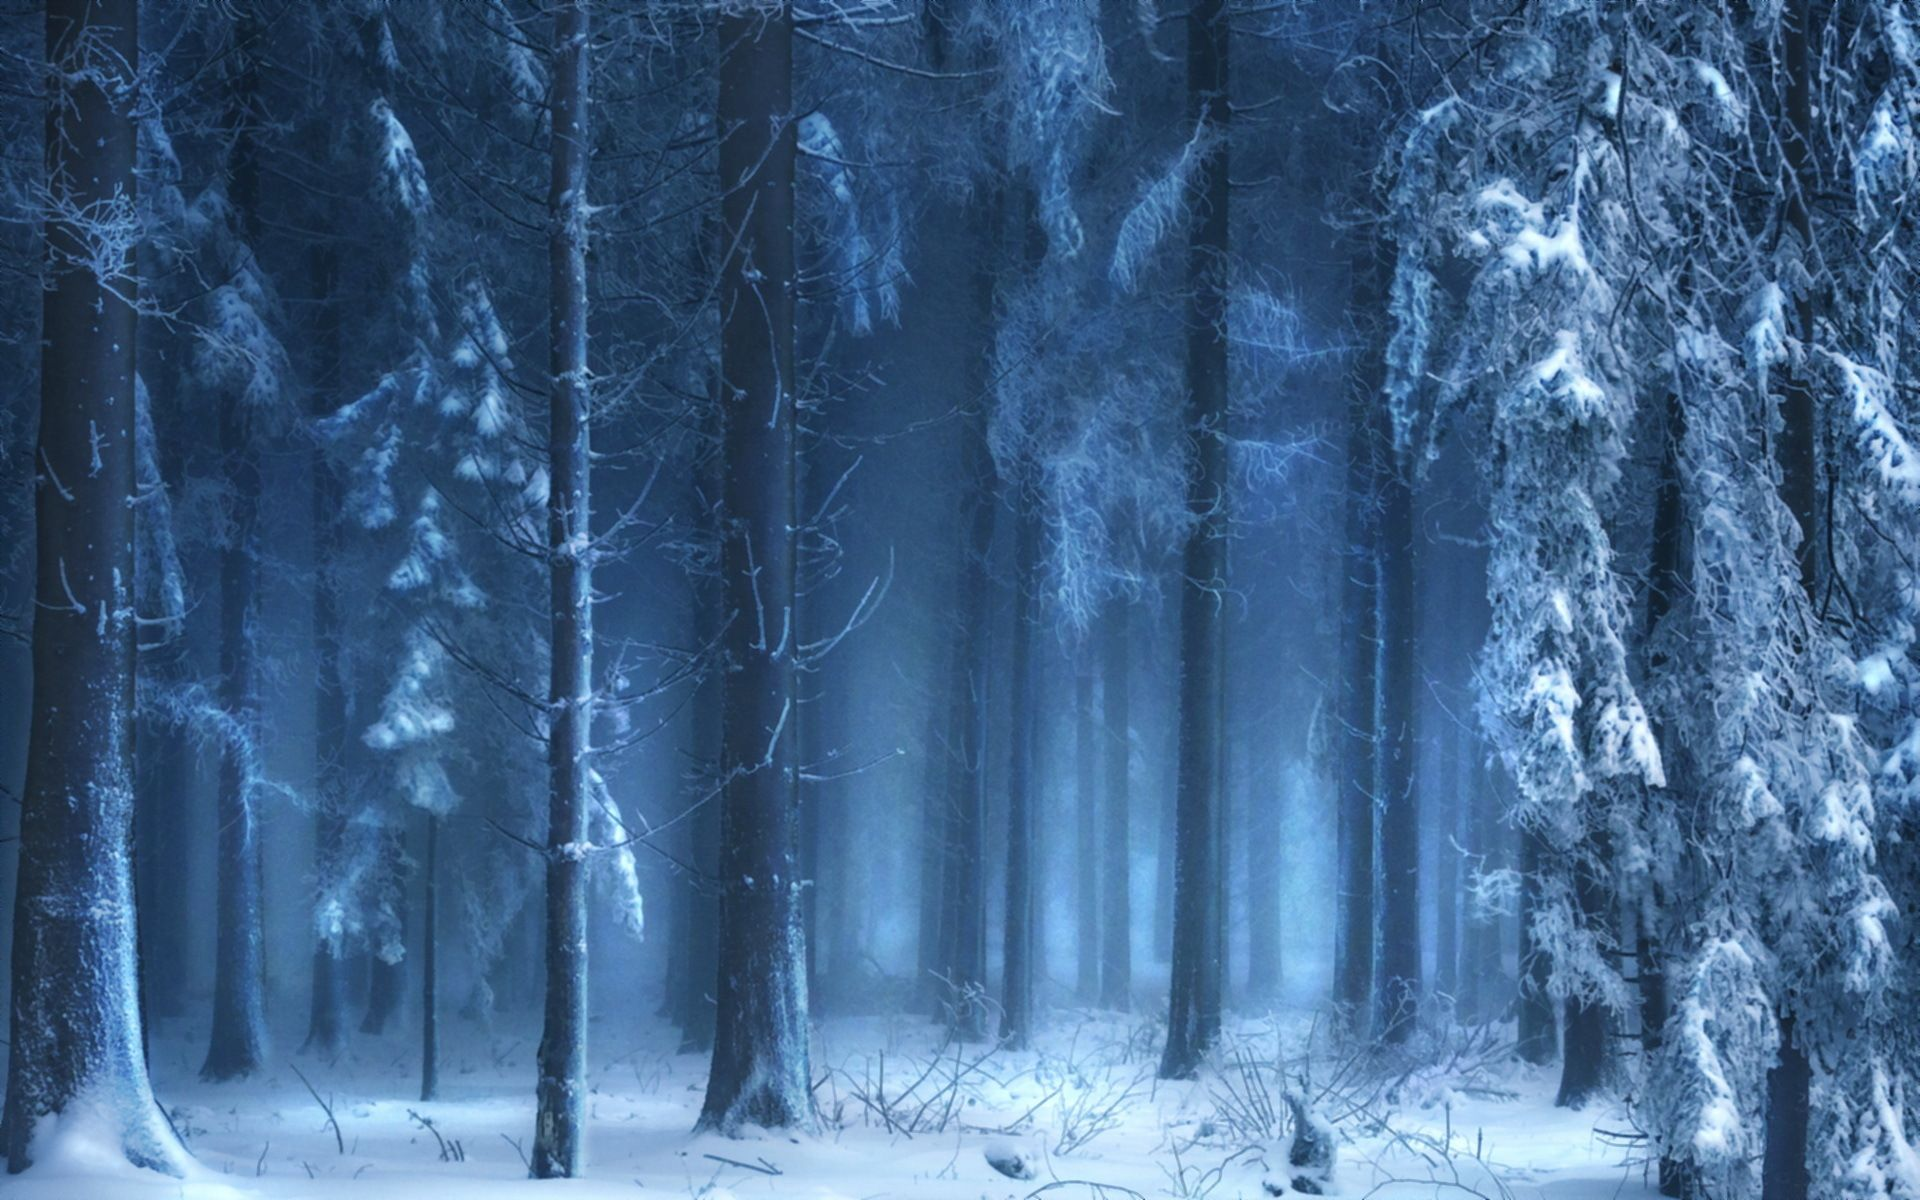 Landscapes Trees Forest Woods Winter Snow Wallpaper 1920x1200 37905 Winter Snow Wallpaper Winter Wallpaper Frozen Wallpaper